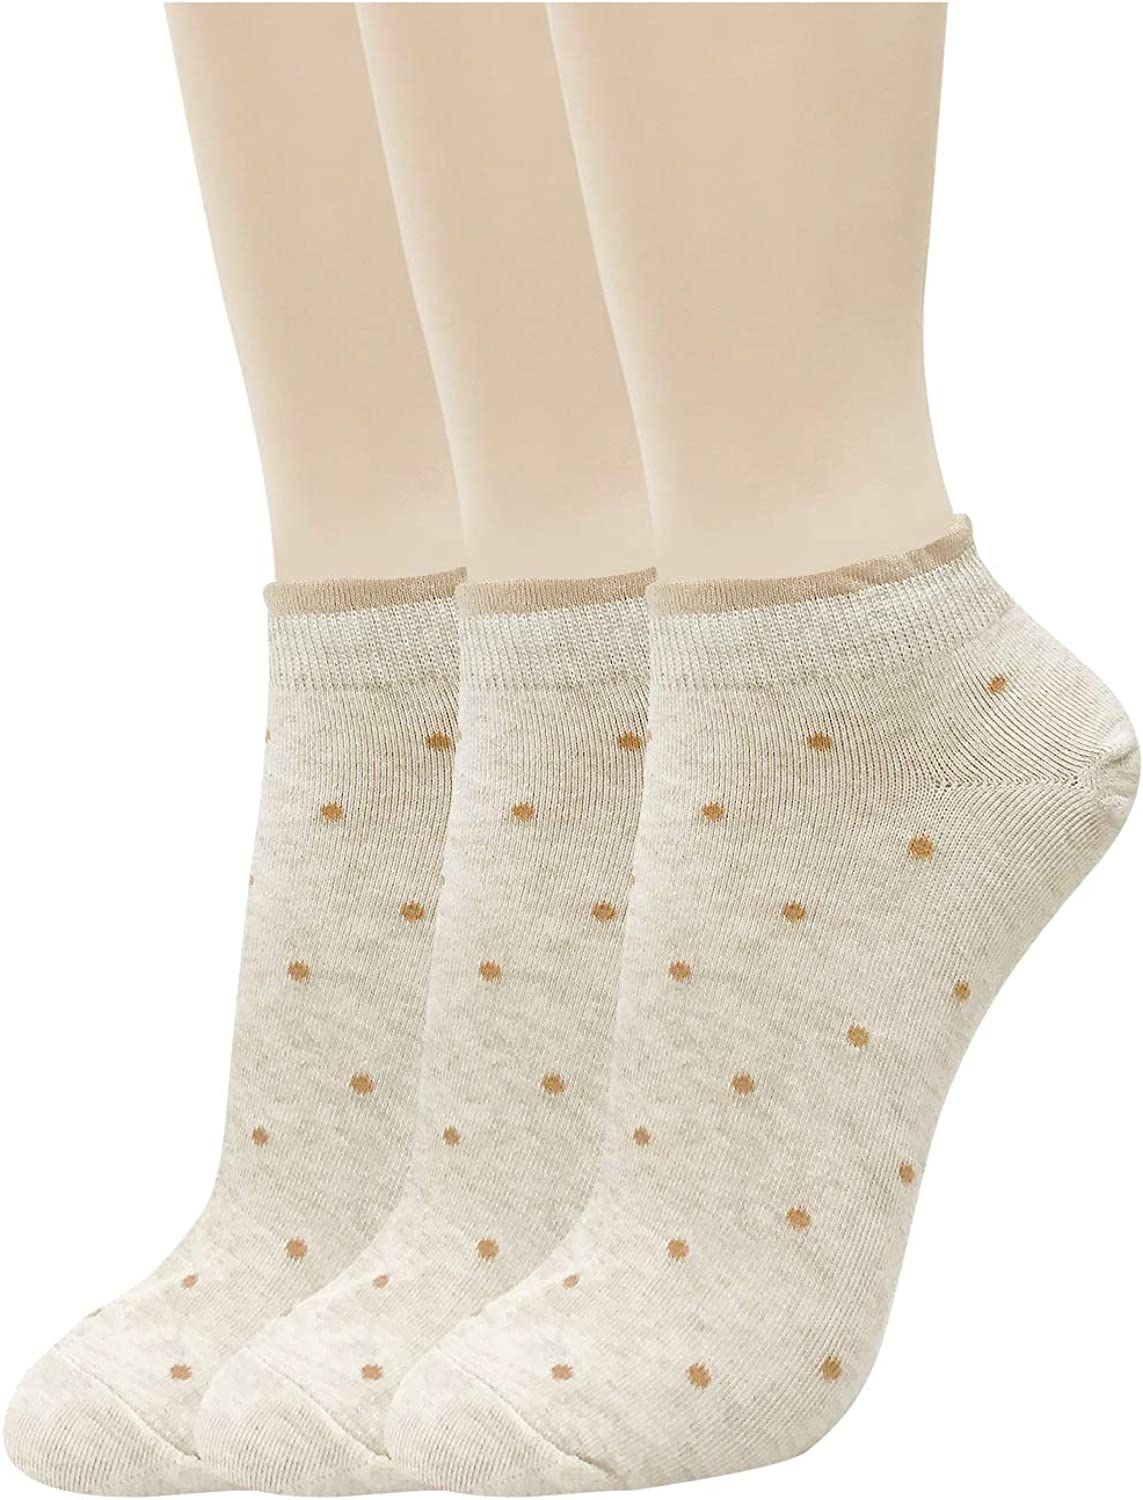 CUTIE MANGO Women's Casual Cute Dot Lace Low Cut Sneaker Ankle Socks Liners 6 Colors / 3 to 12 Pairs